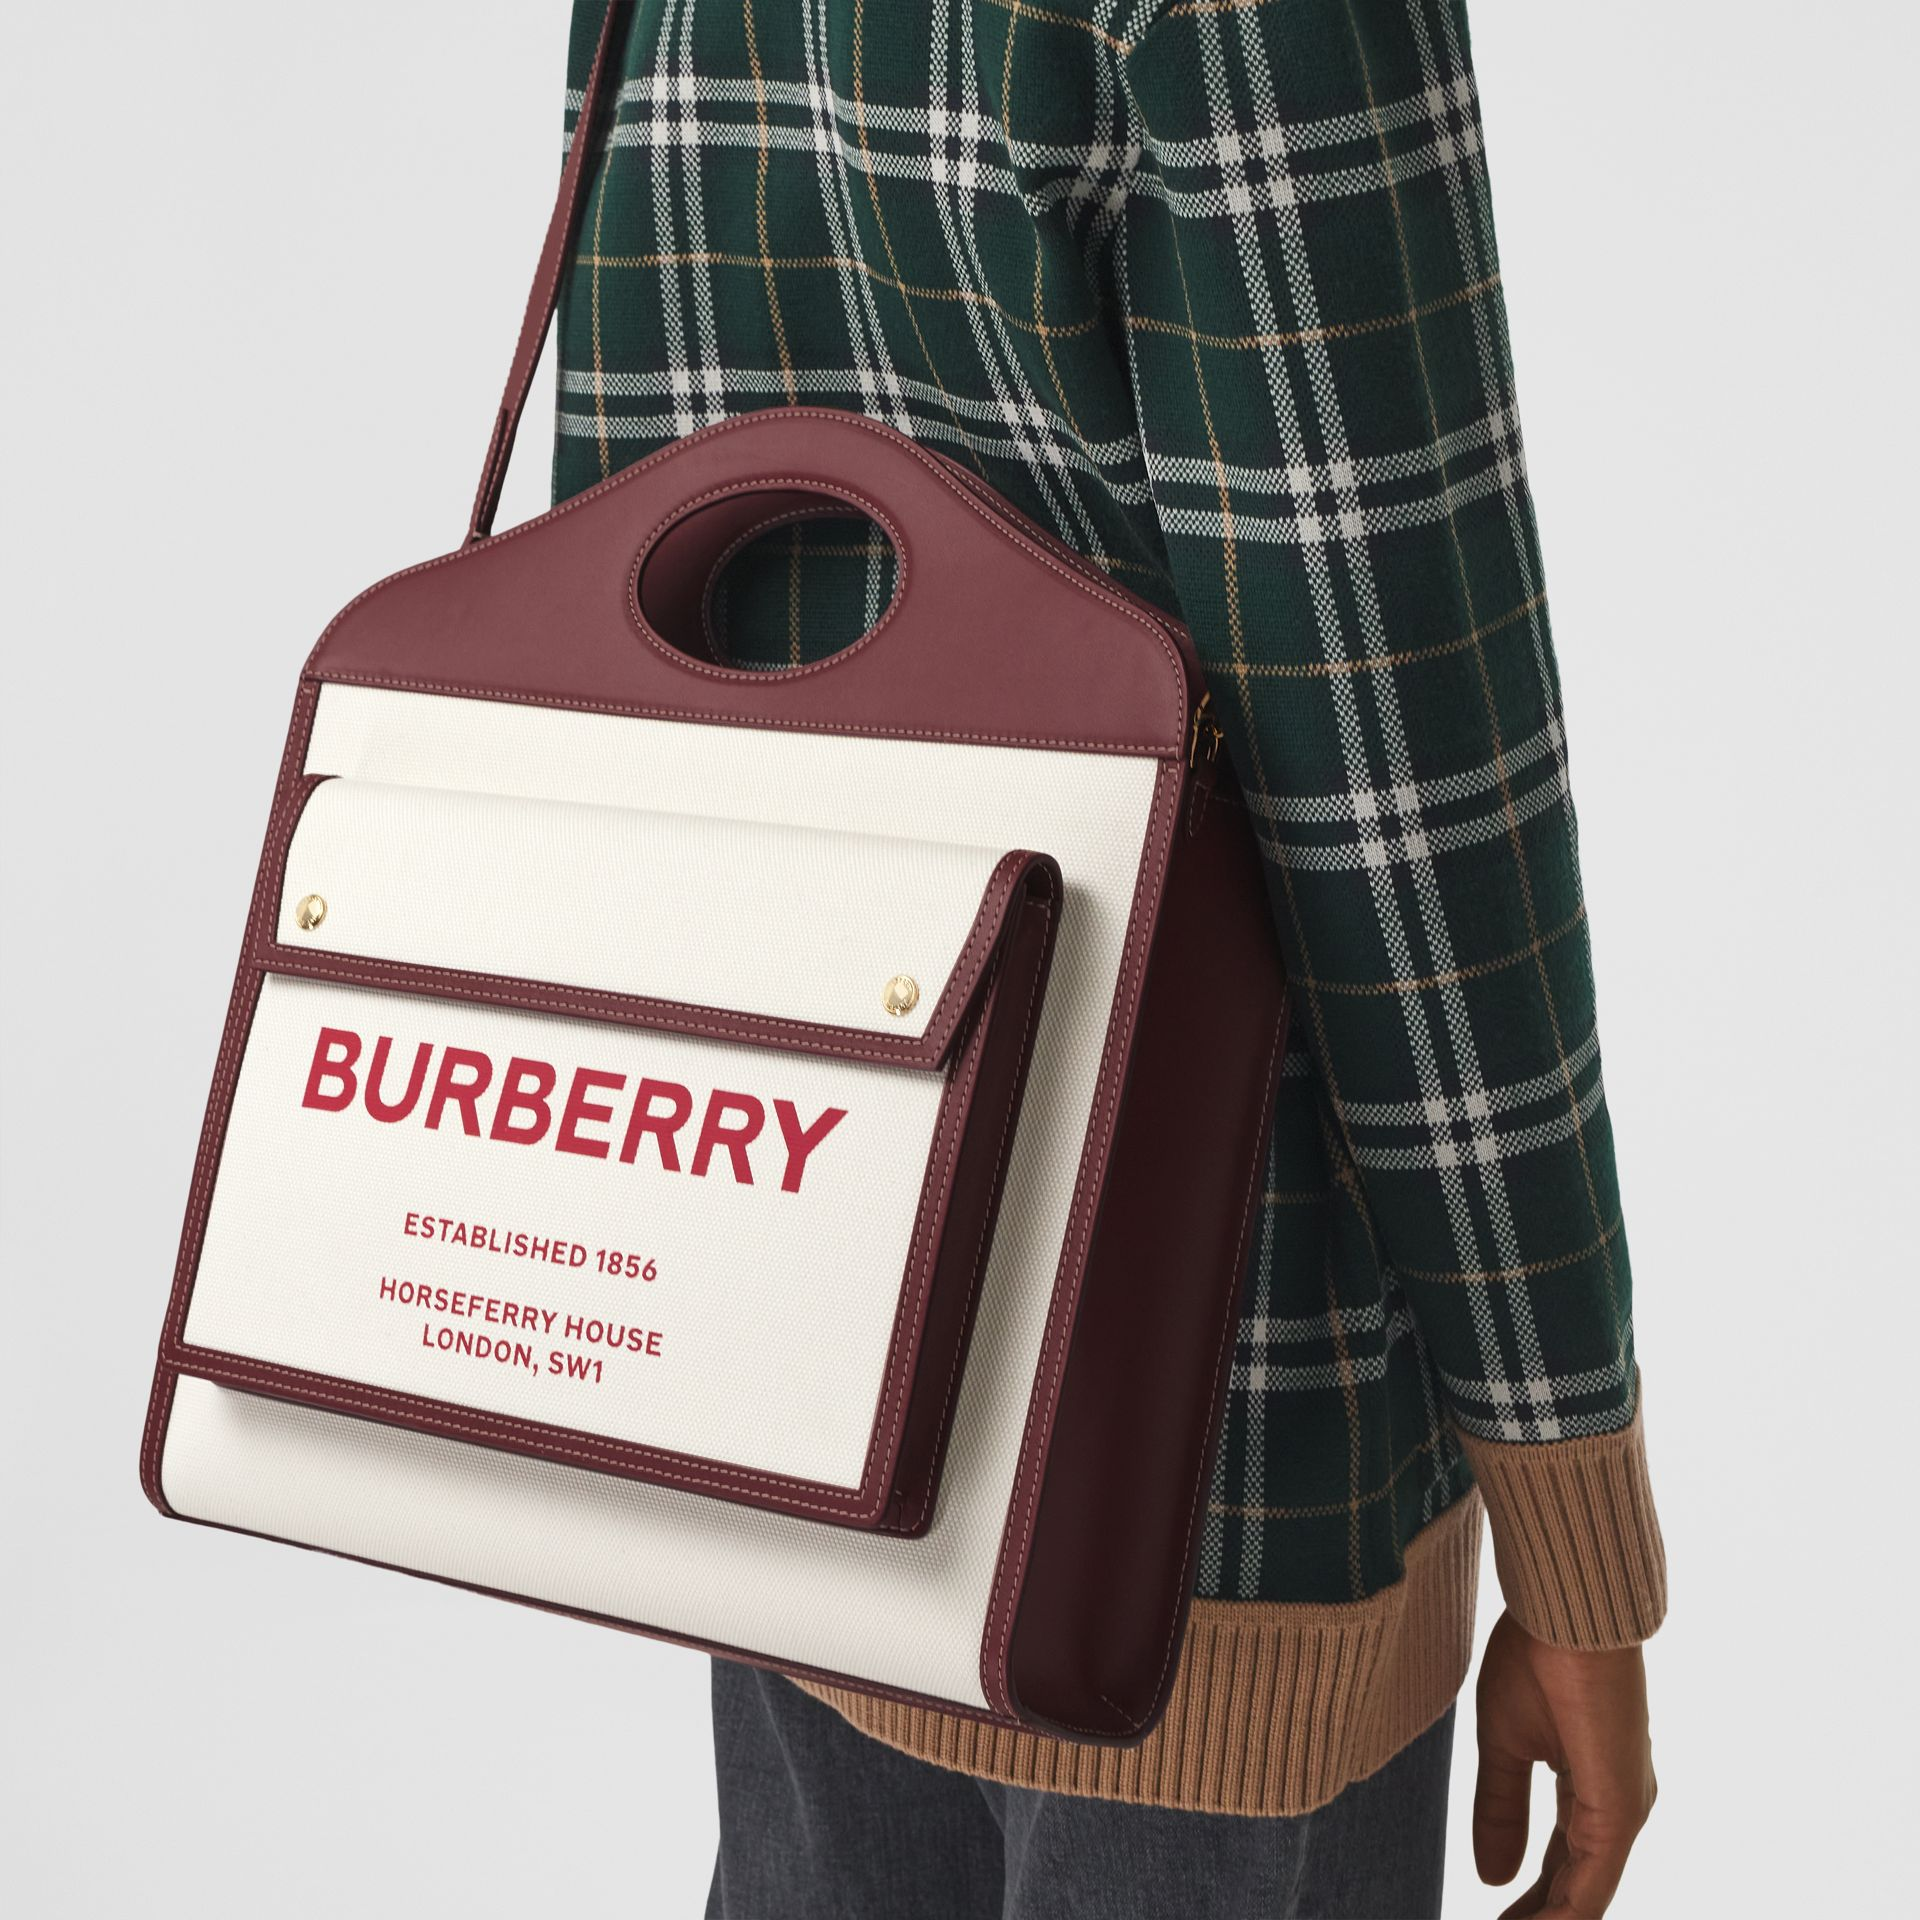 Sac Pocket moyen en toile et cuir bicolore (Naturel/grenat) - Femme | Burberry - photo de la galerie 8